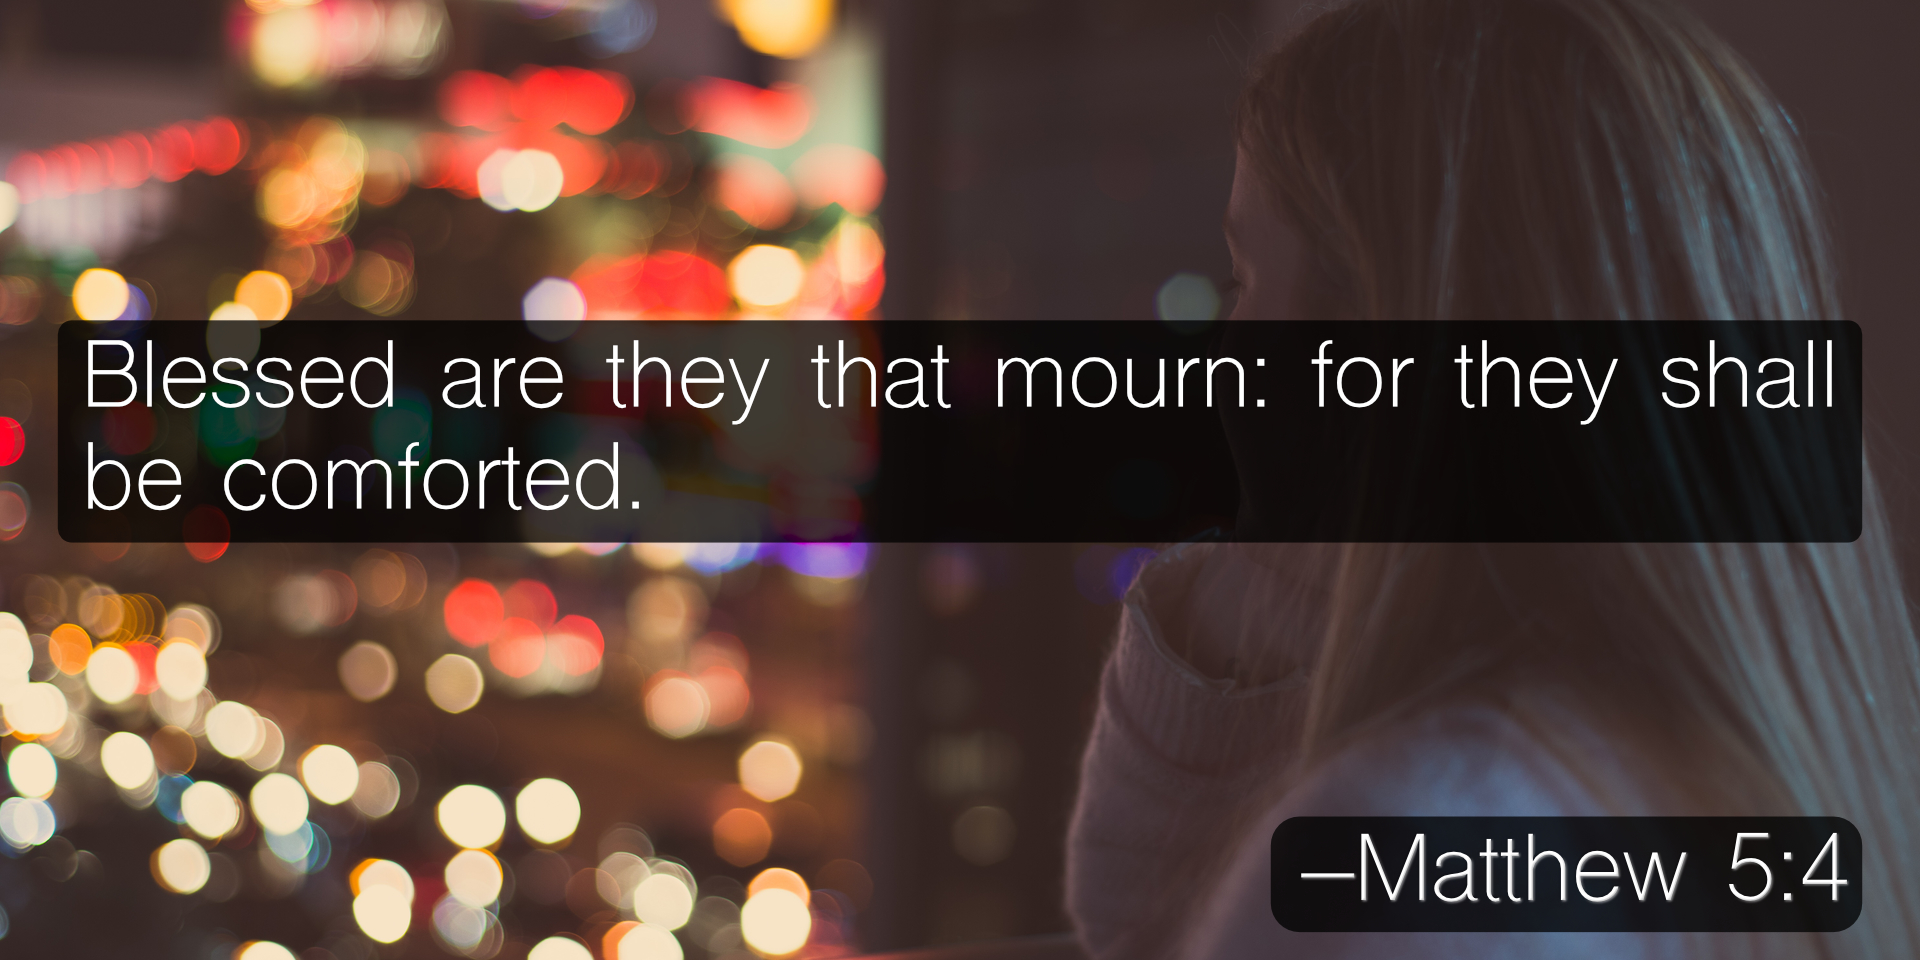 Blessed are they that mourn: for they shall be comforted. –Matthew 5:4